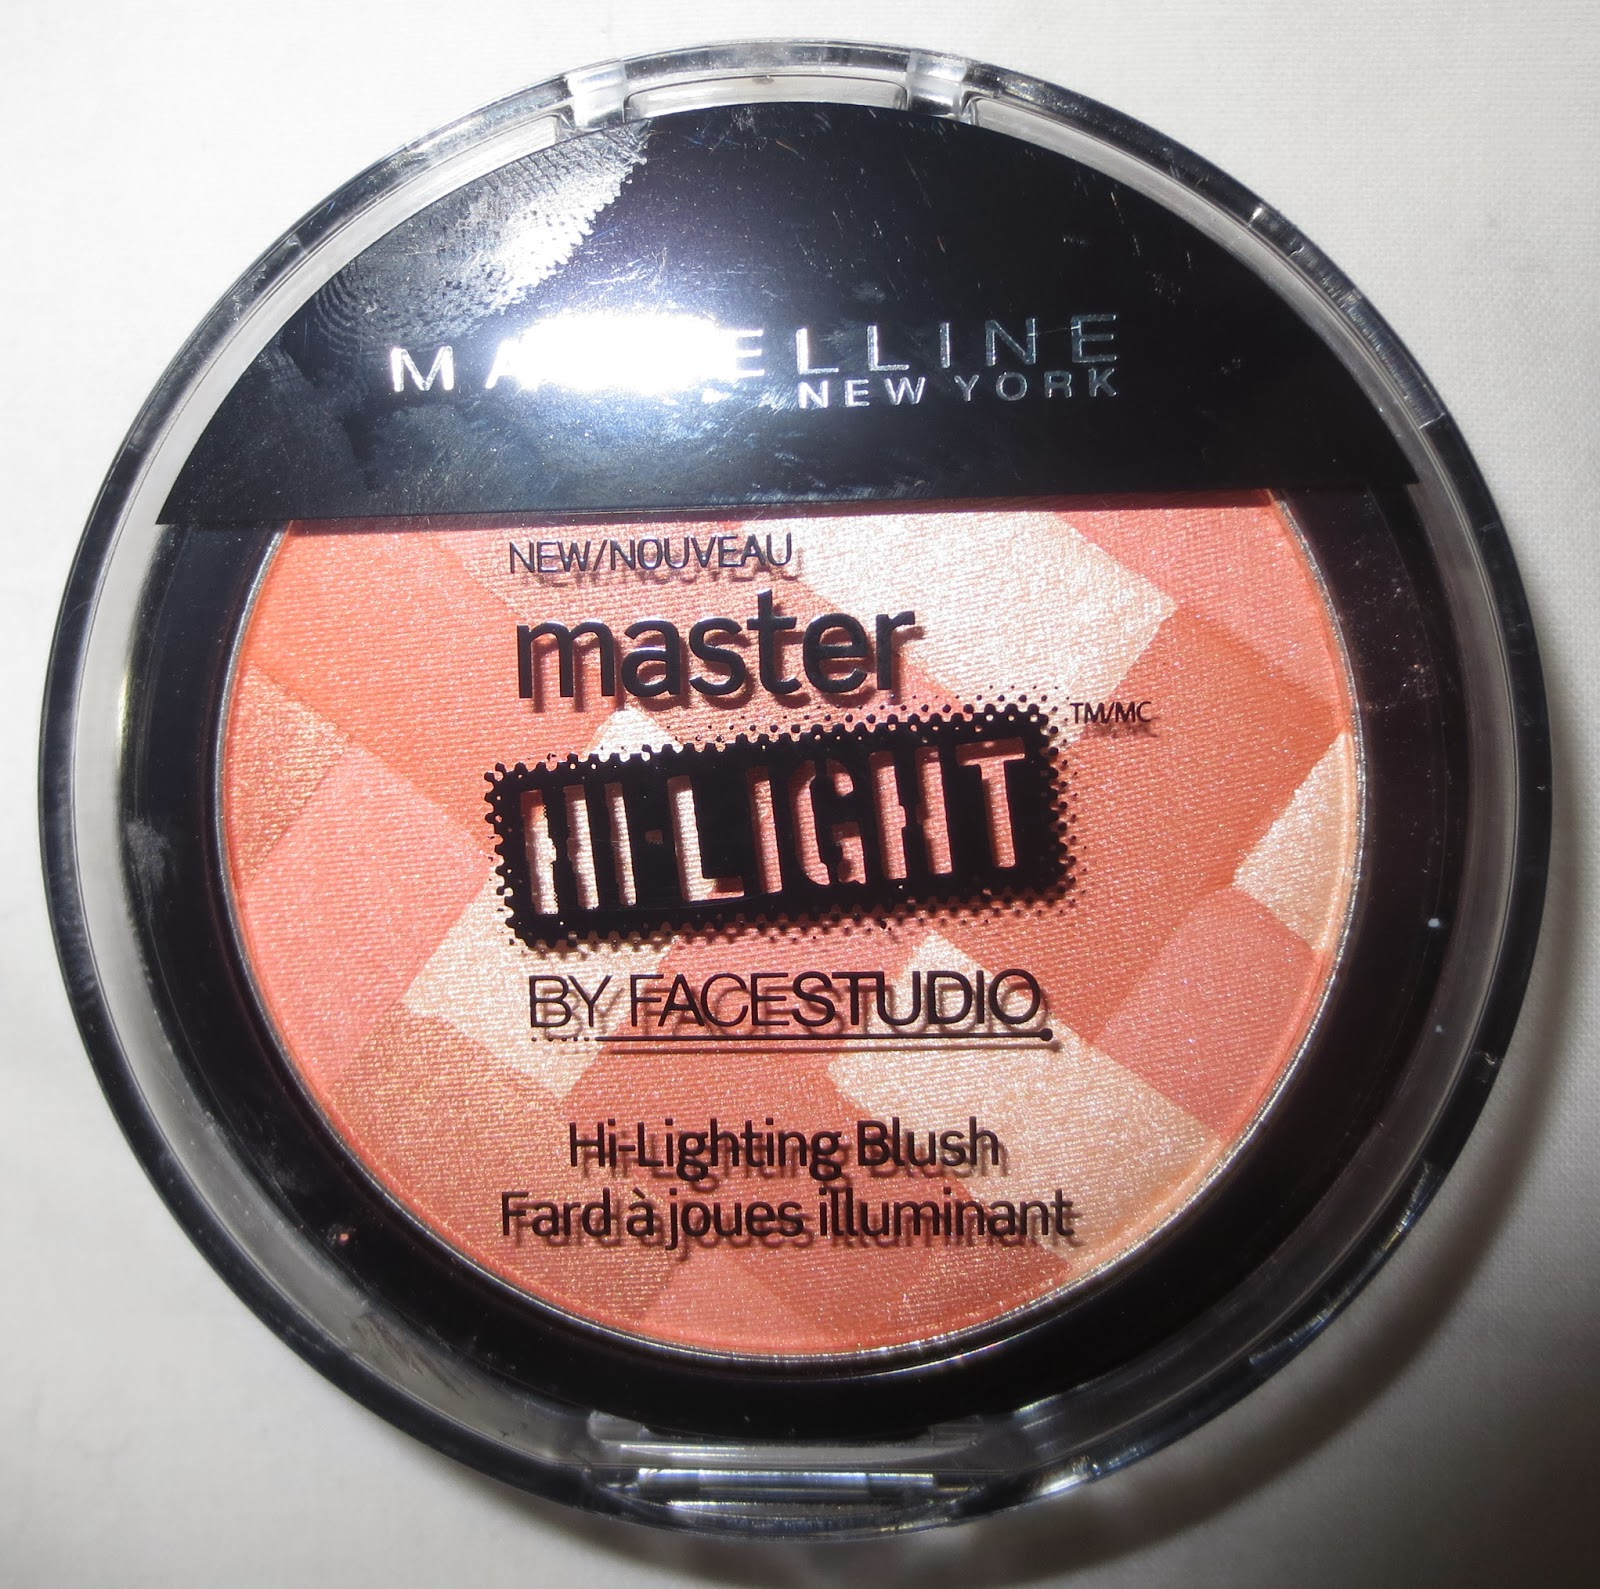 Maybelline Master Hi-Light in Coral